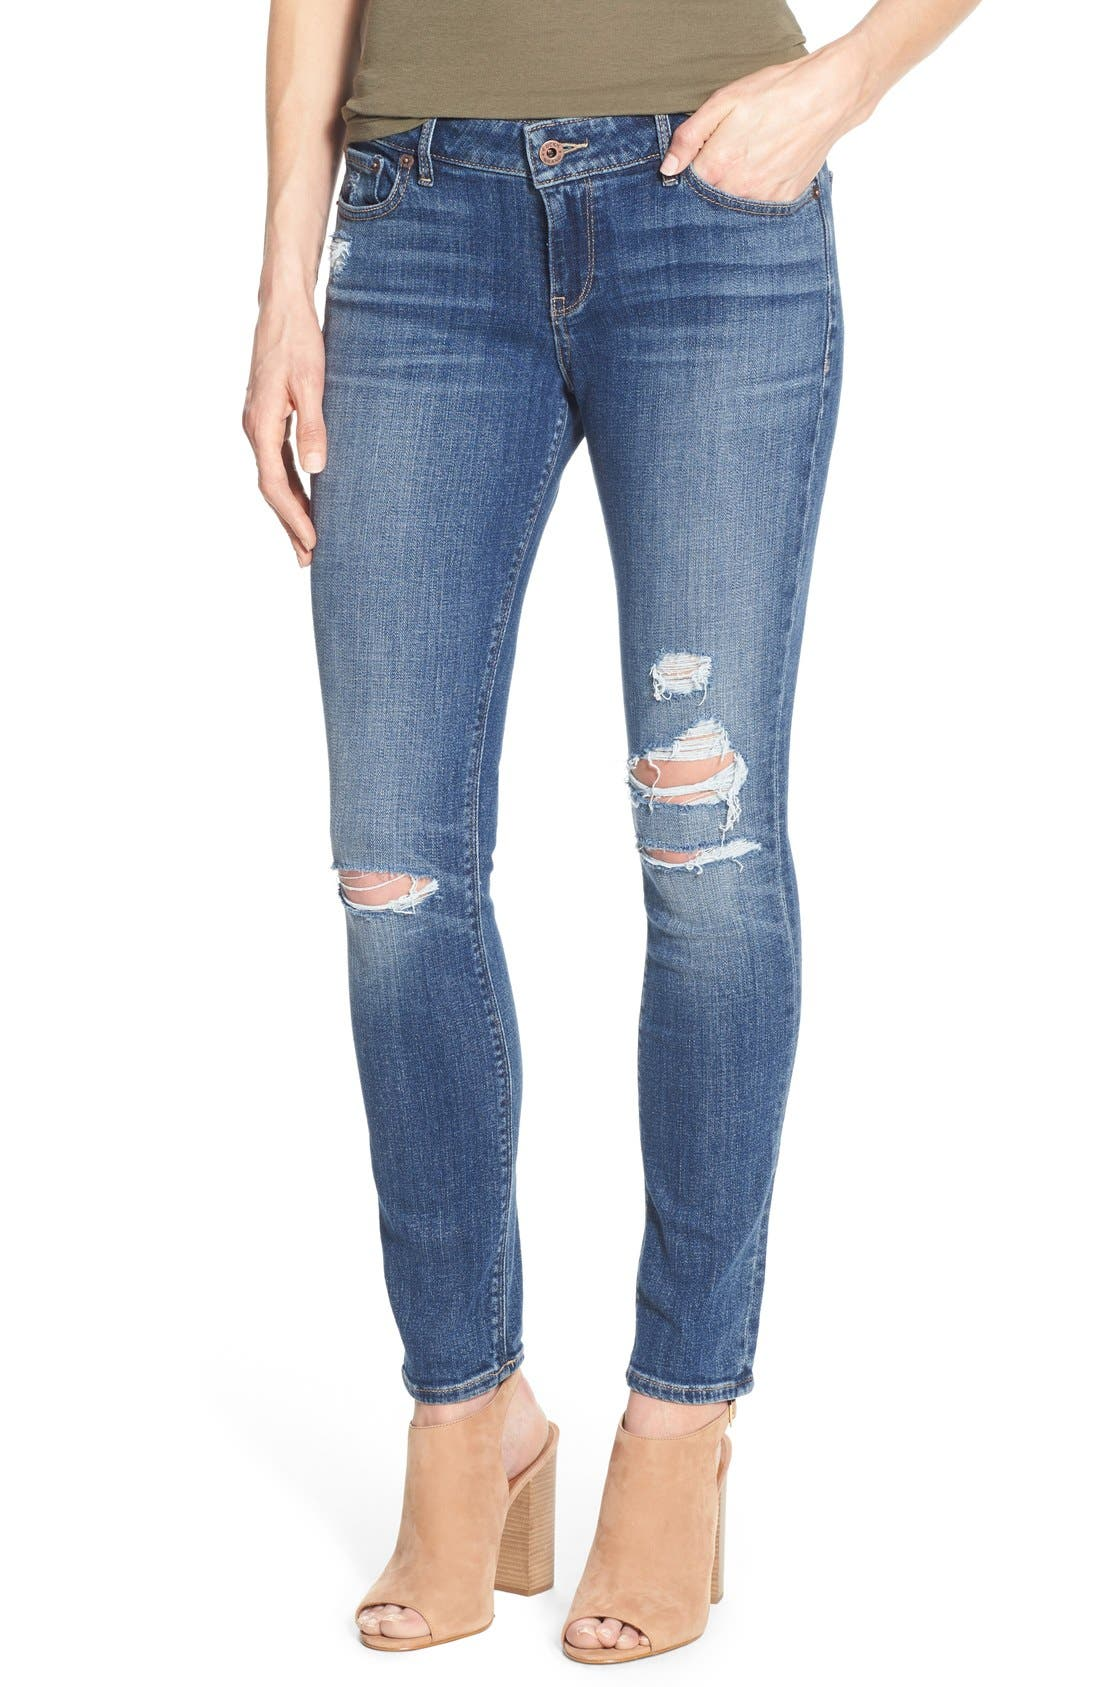 Alternate Image 1 Selected - Lucky Brand 'Lolita' Distressed Stretch Skinny Jeans (Morrison)